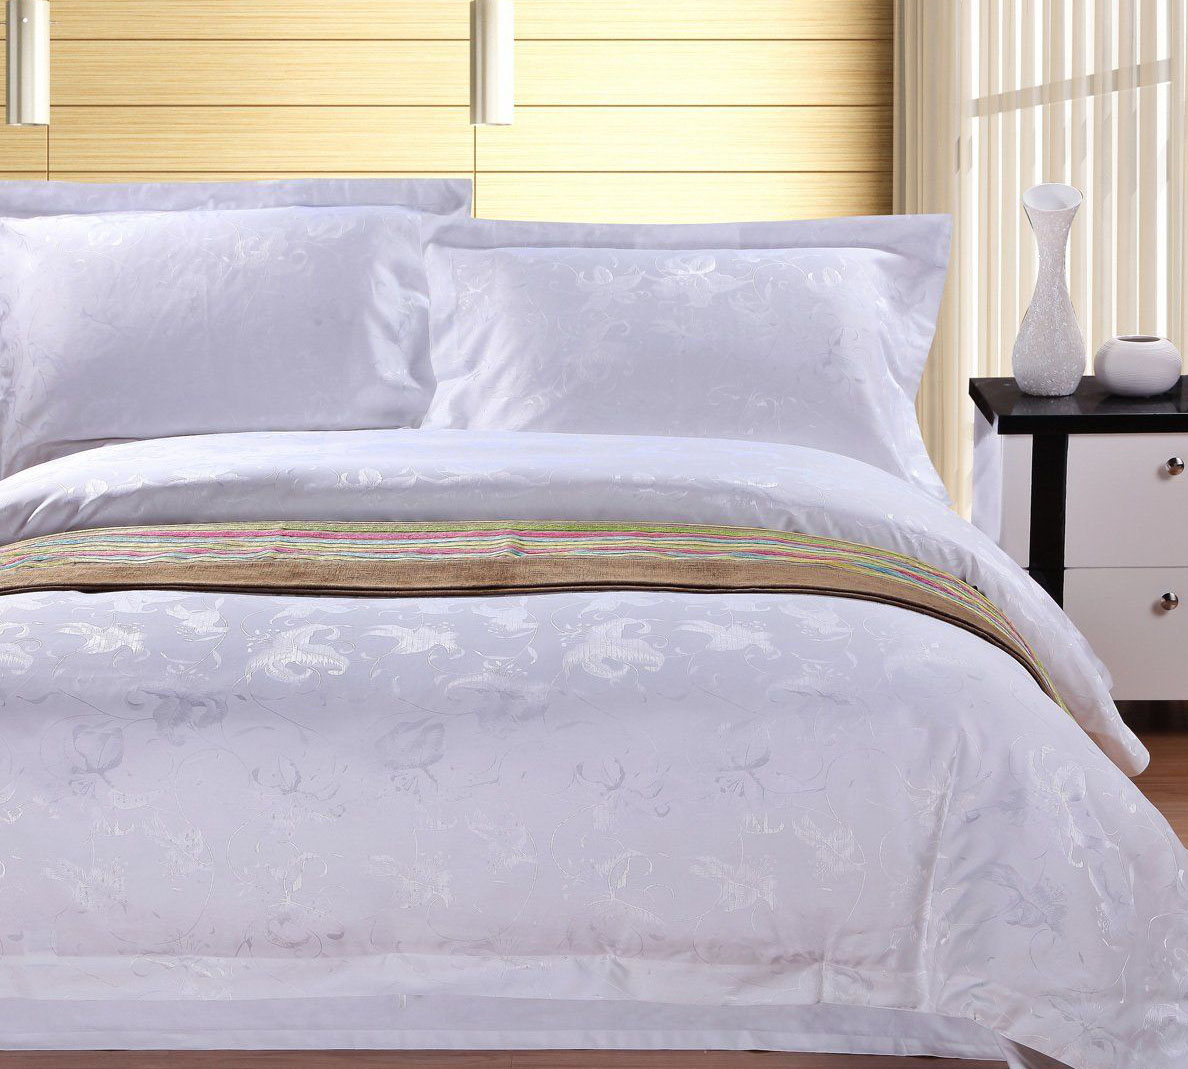 bleached white/dyed sateen/satin duvet covers for hotel